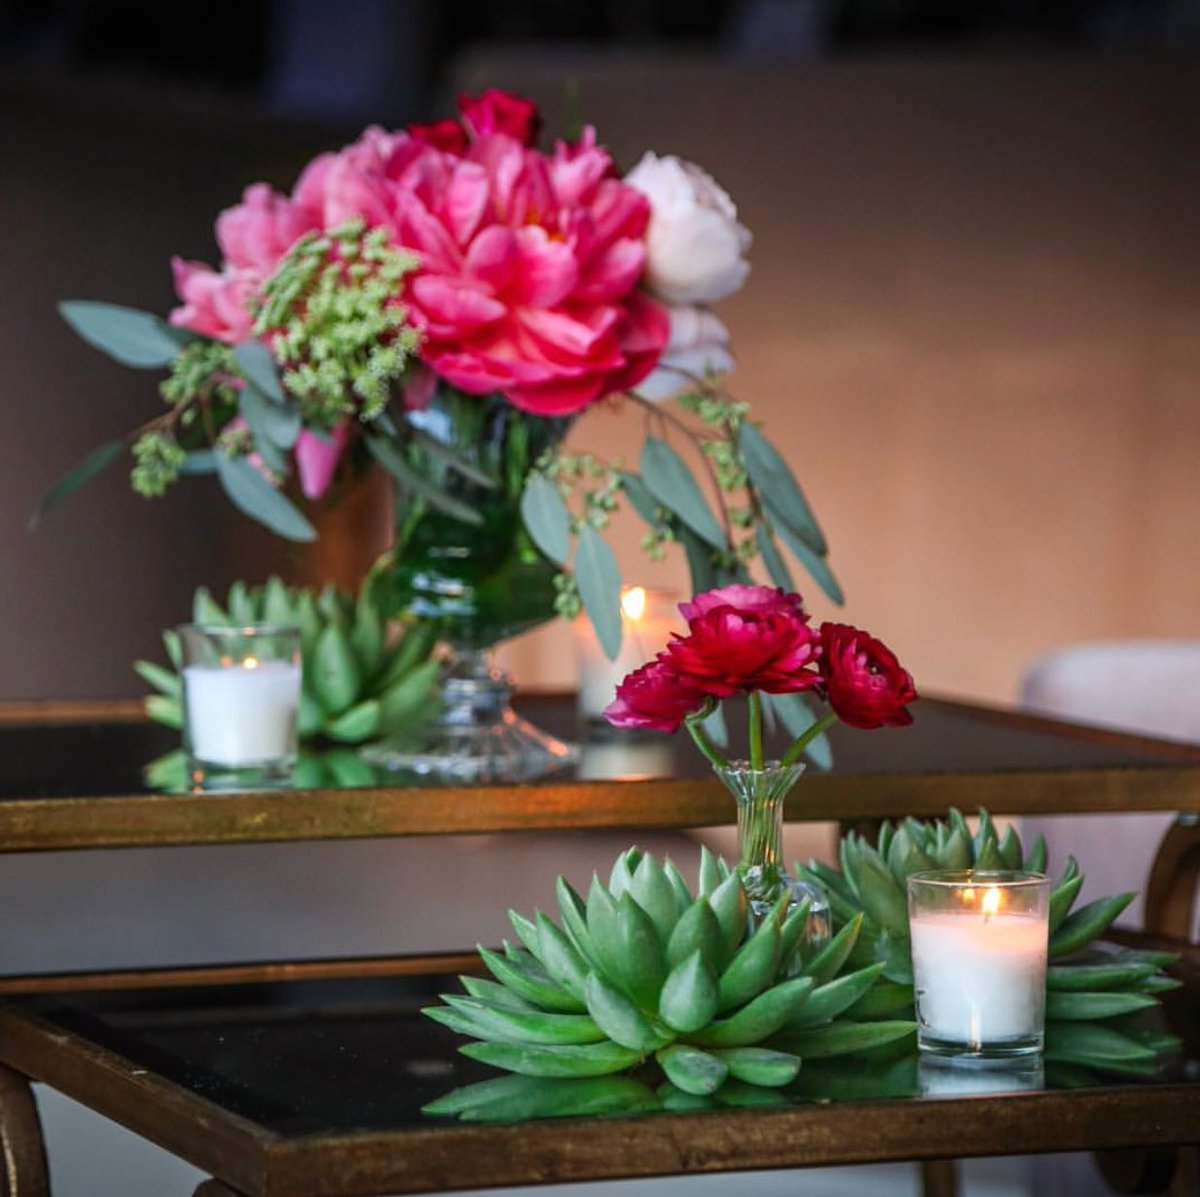 Pop of Peonies #itsallinthedetail #cateredperfection #wedding #style #miamiliving #design #vintagestyle<br>http://pic.twitter.com/Bk4DFBkka7